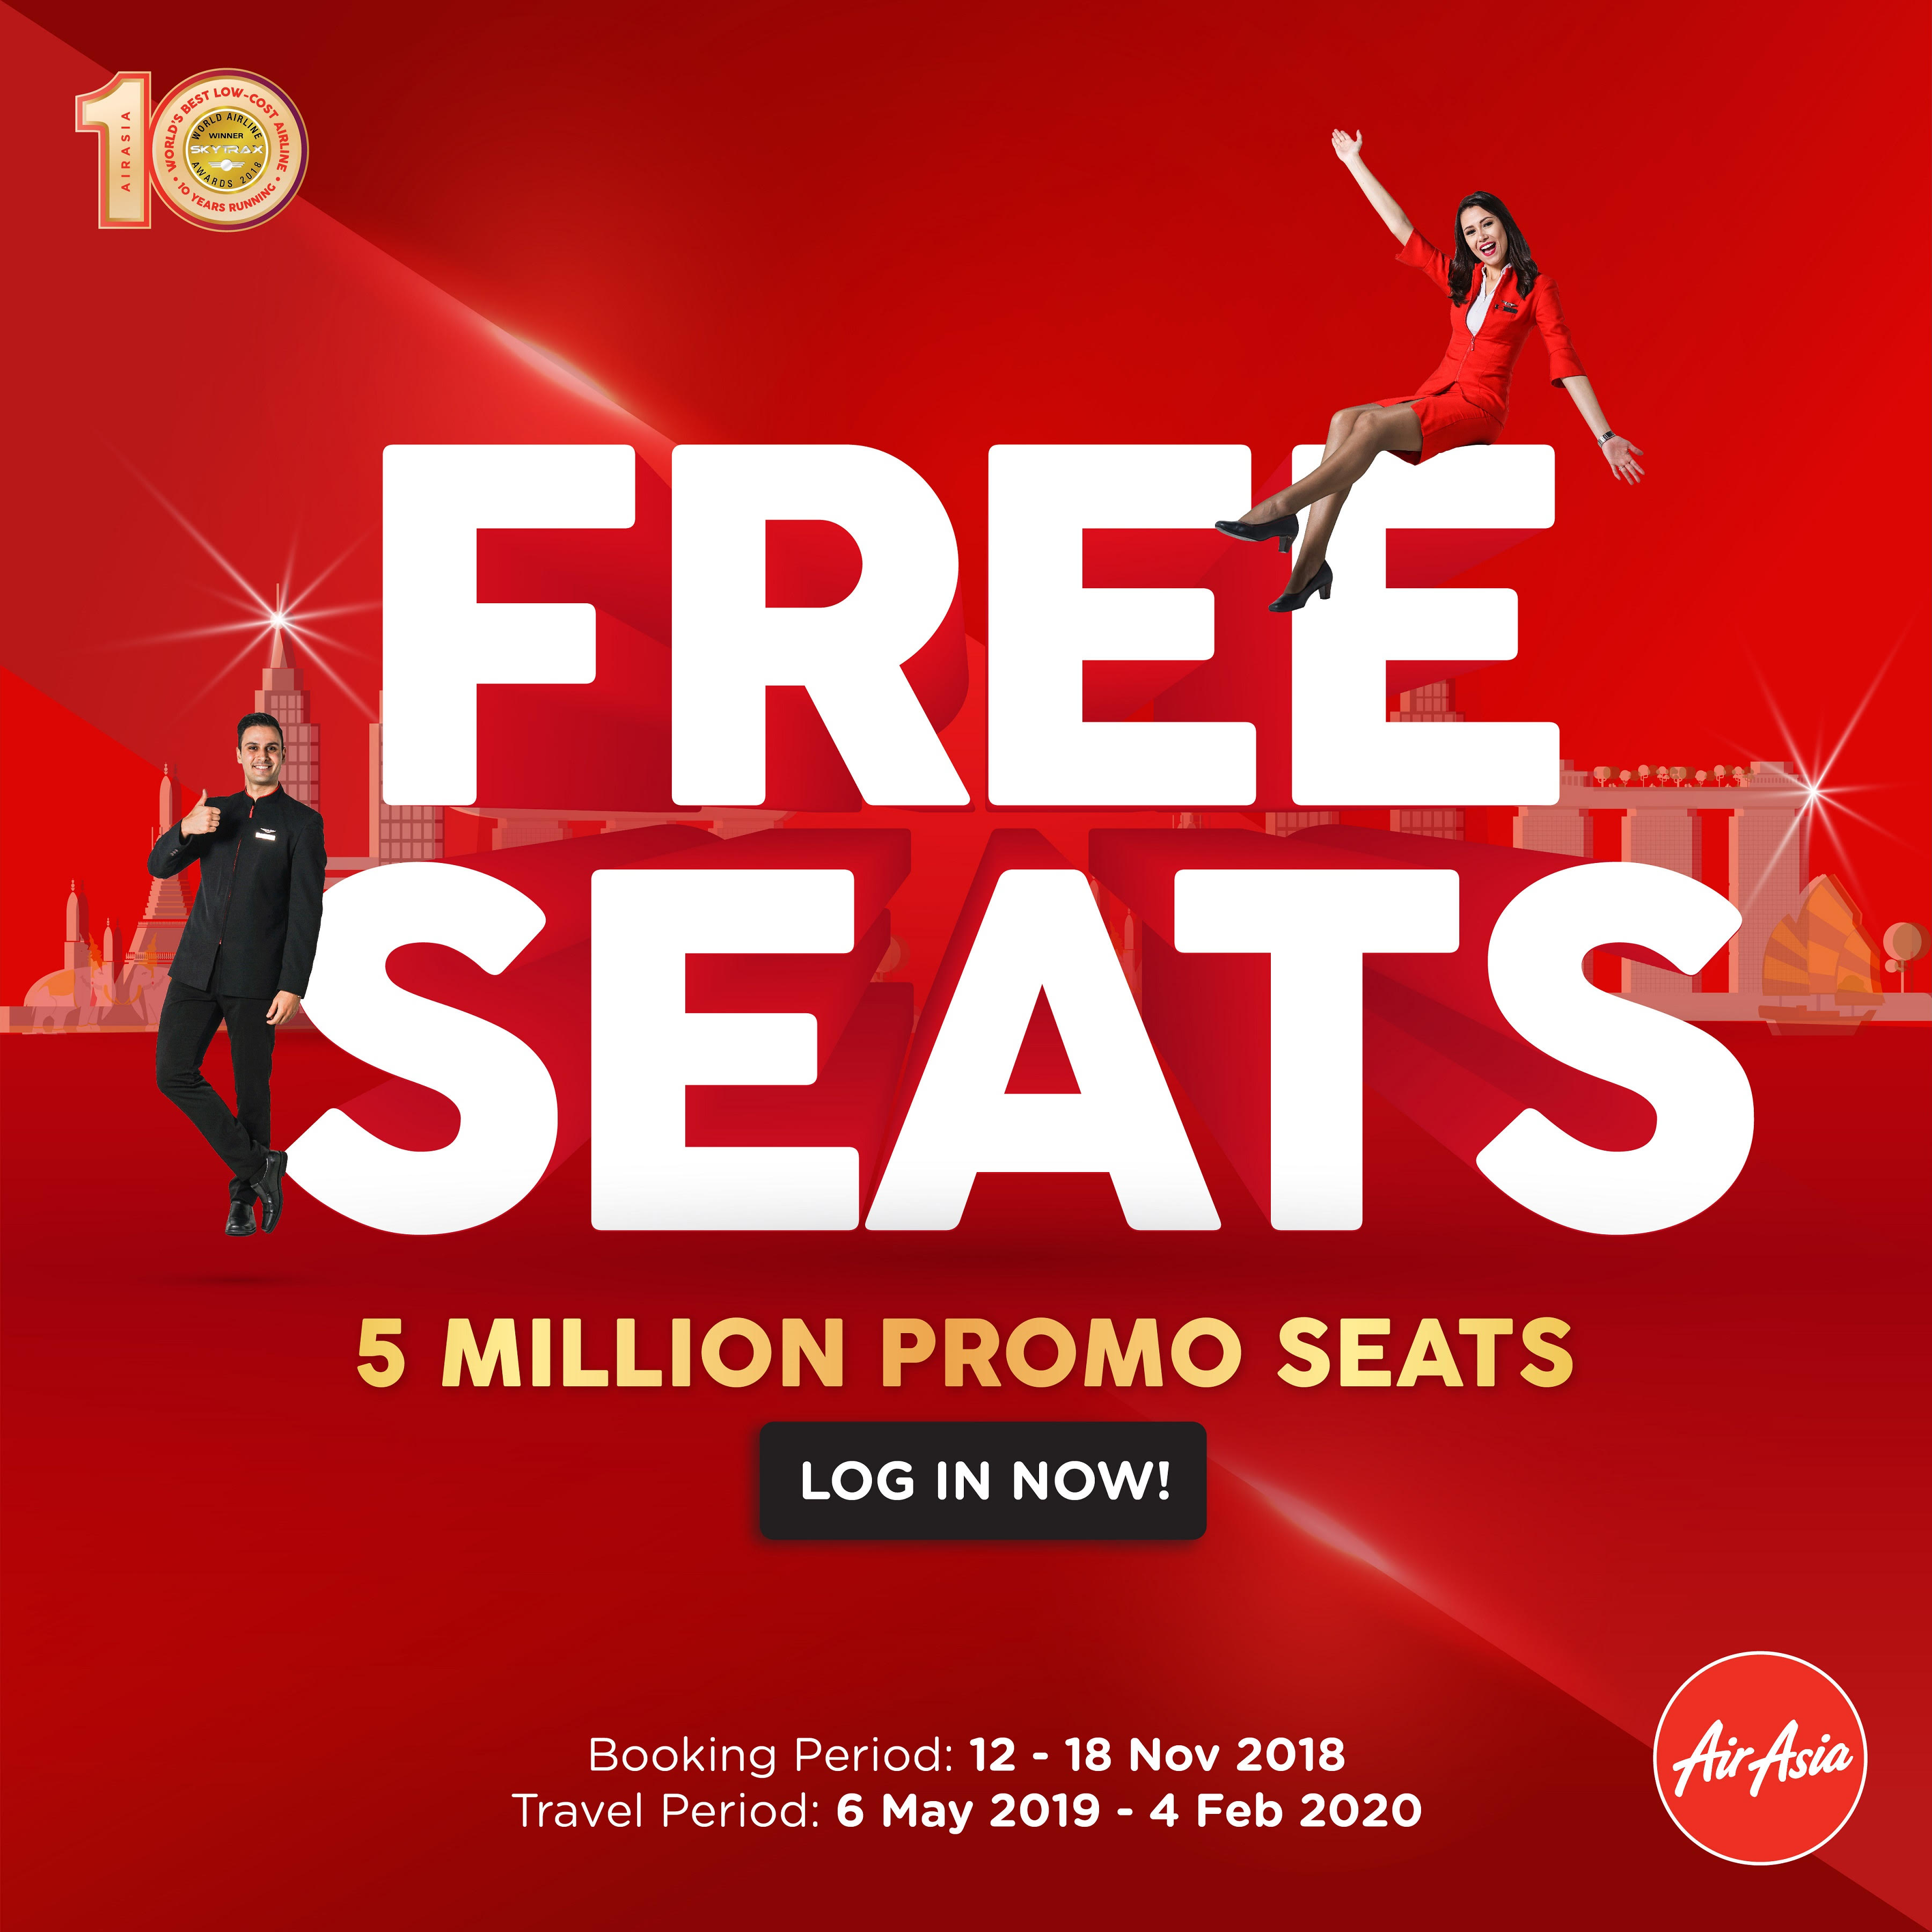 AirAsia Final Free Seats Sale of The Year!